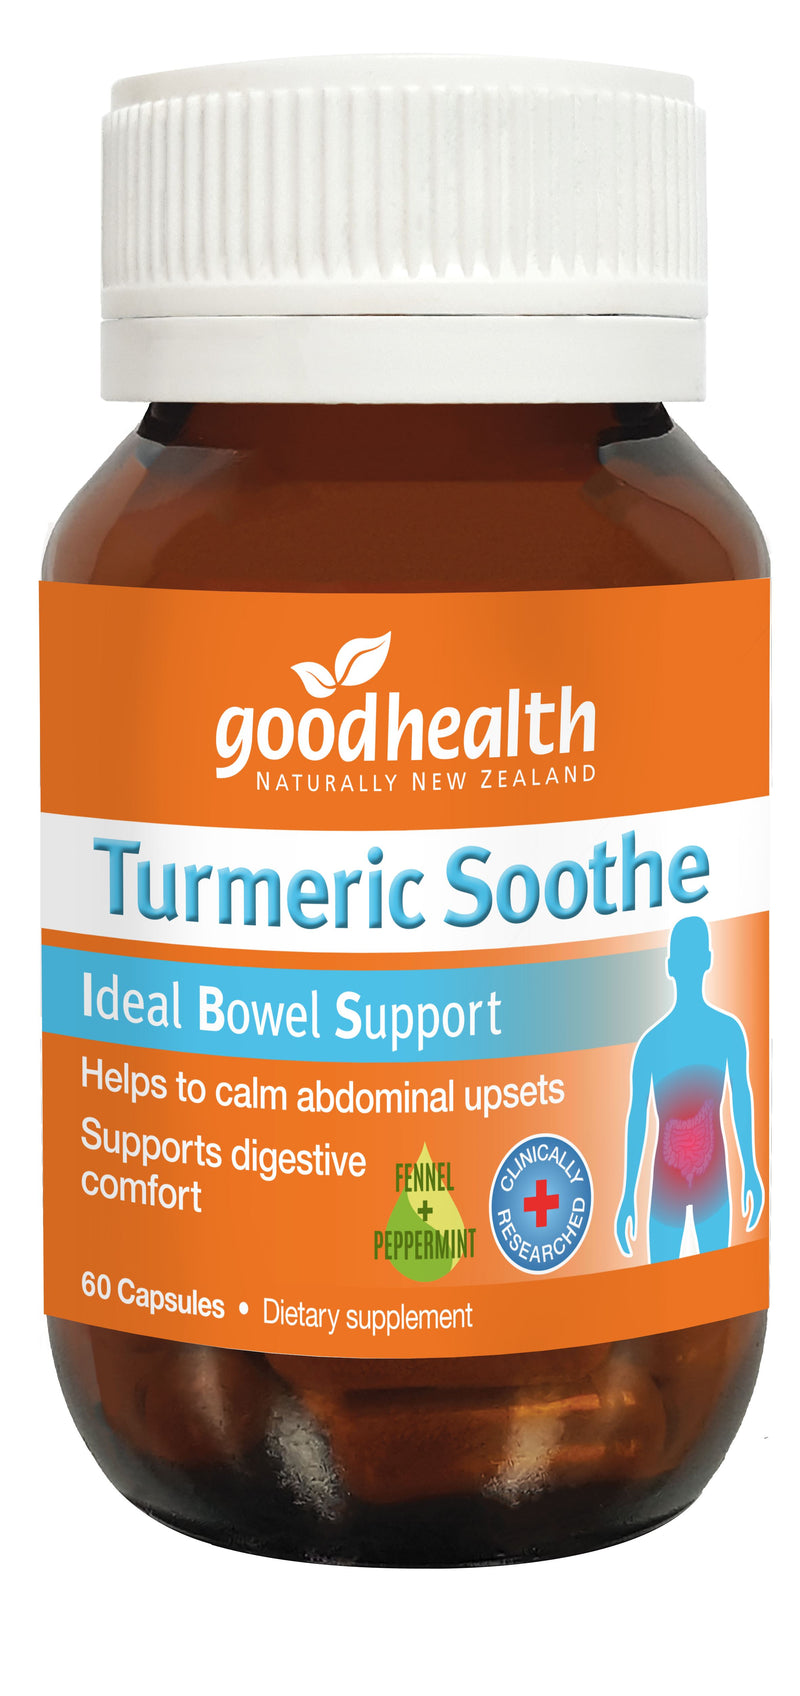 Tumeric Soothe Ideal Bowel Support - 60 Capsules